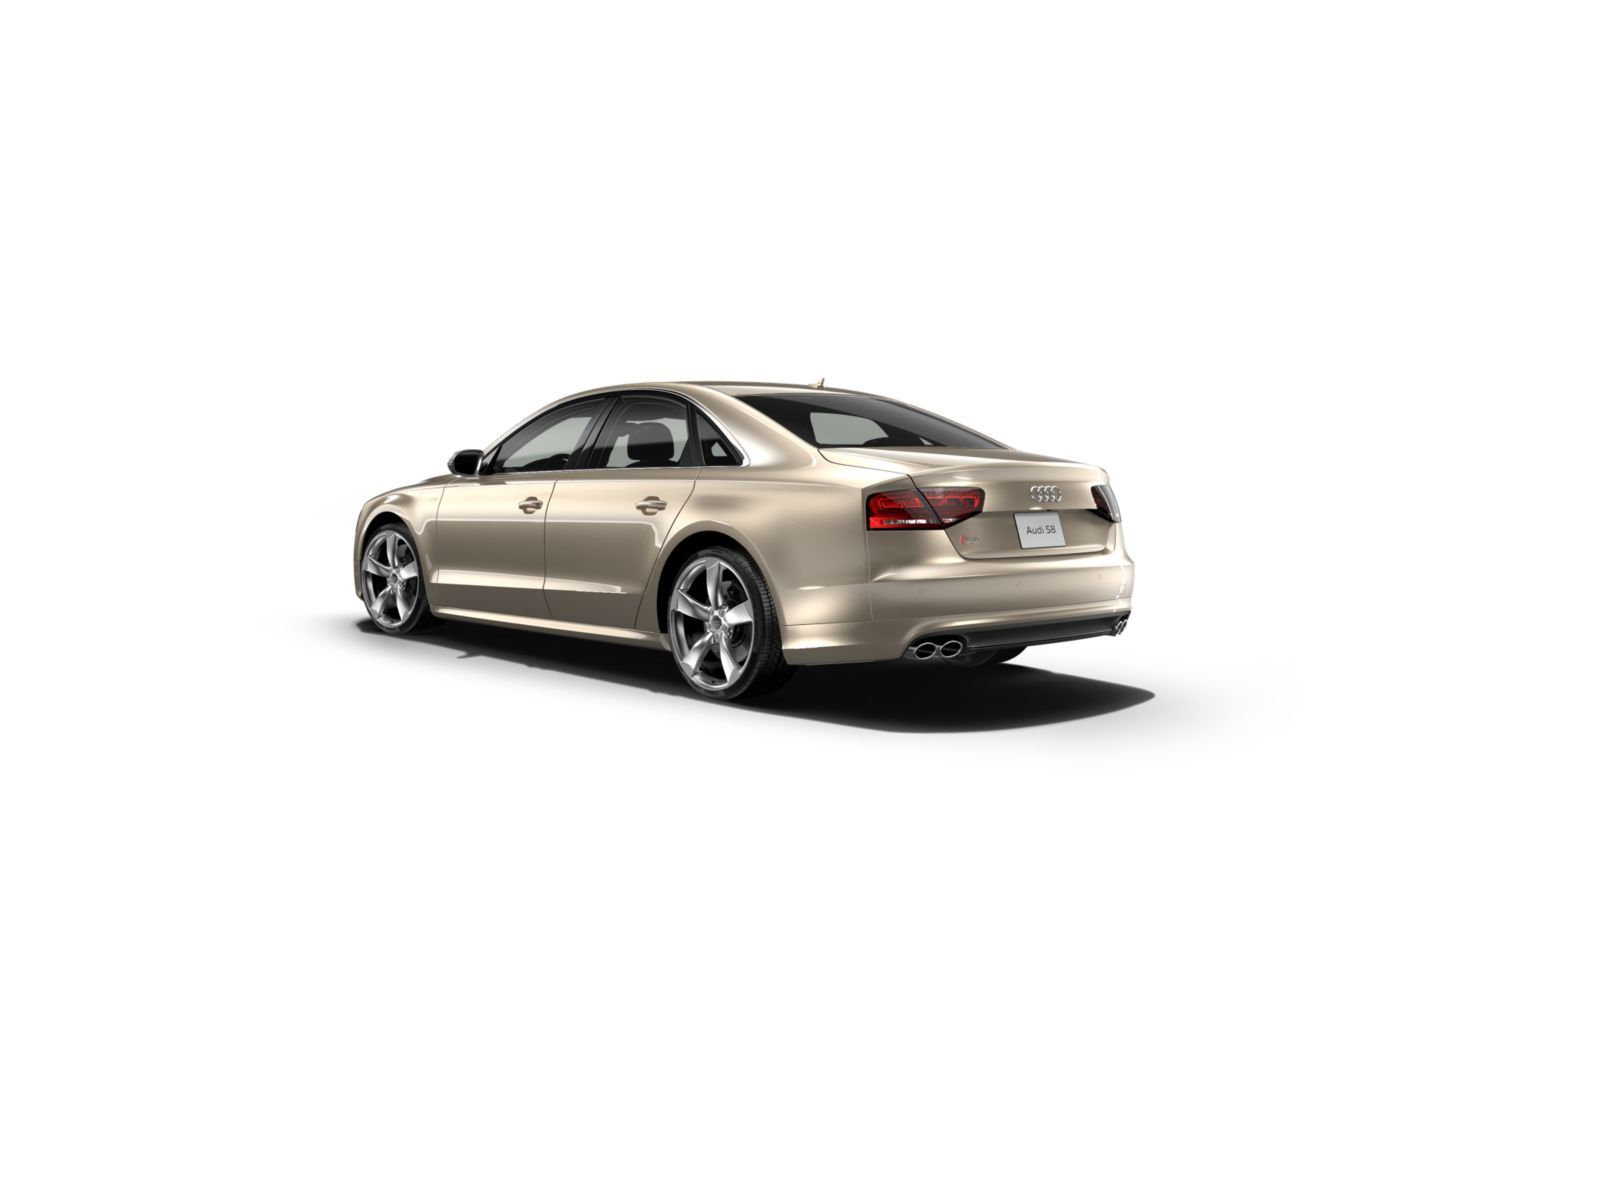 Audi Build Your Own >> Build Your Own Audi S8 Car Configurator Audi Usa Other Rides I